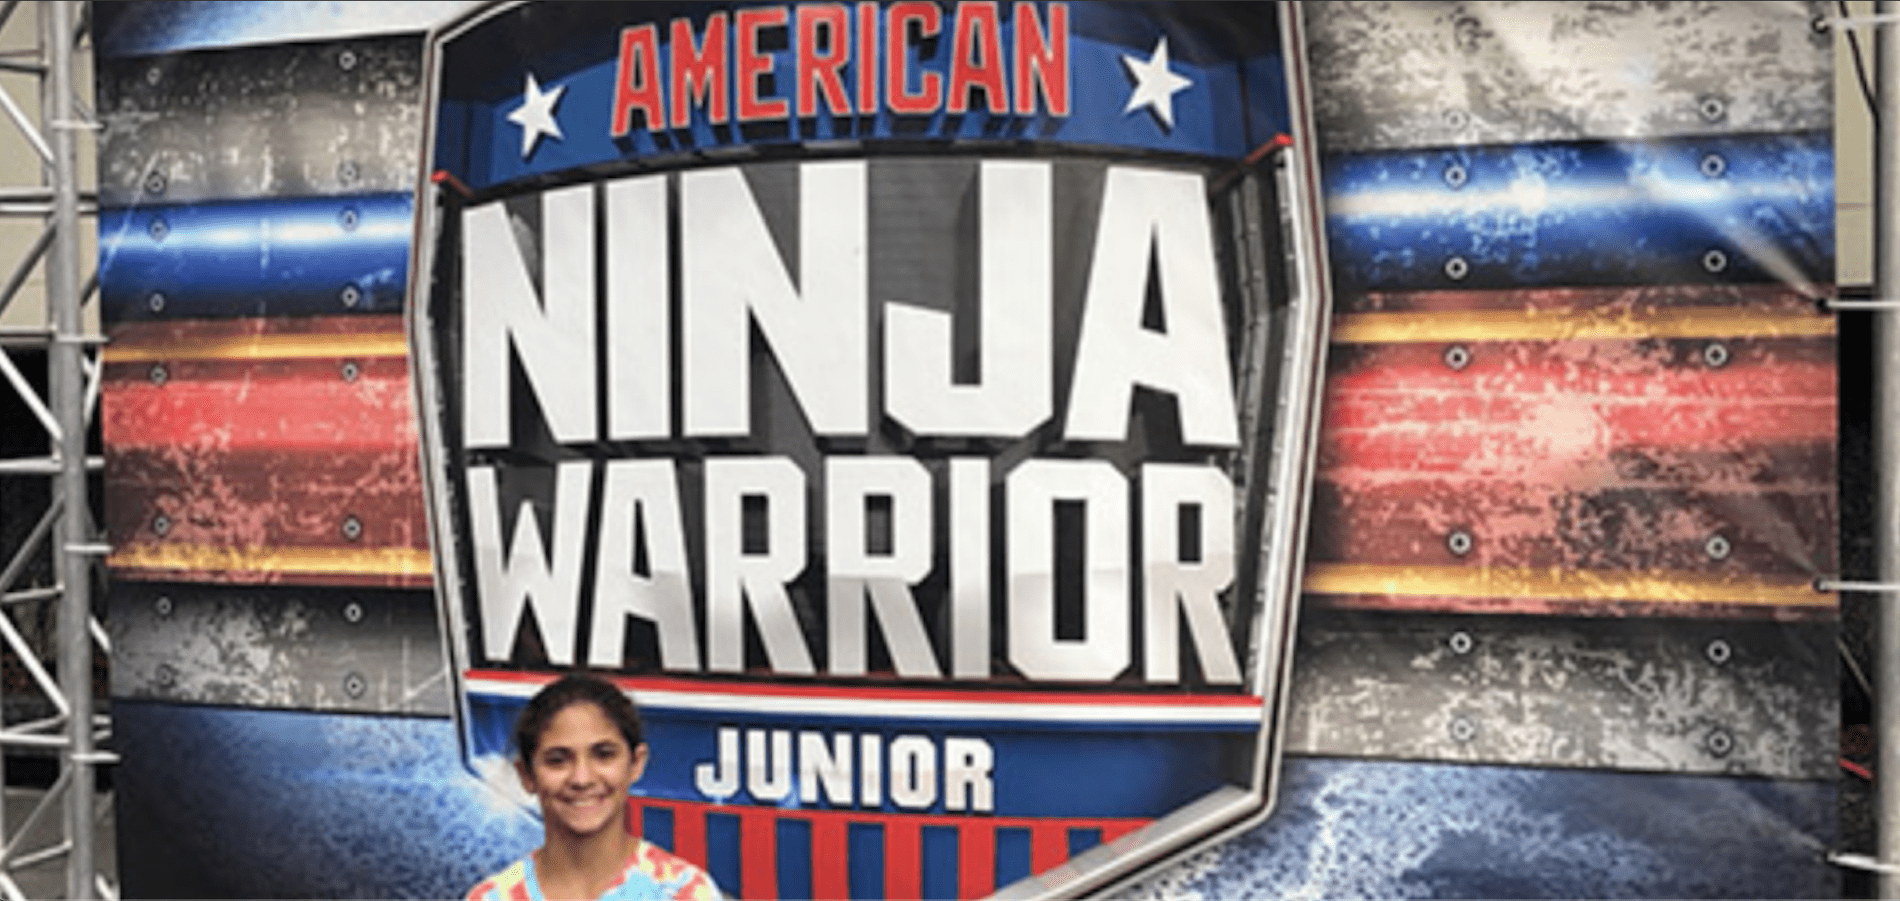 This Orthodox Jewish Girl Will Be On American Ninja Warrior Junior!